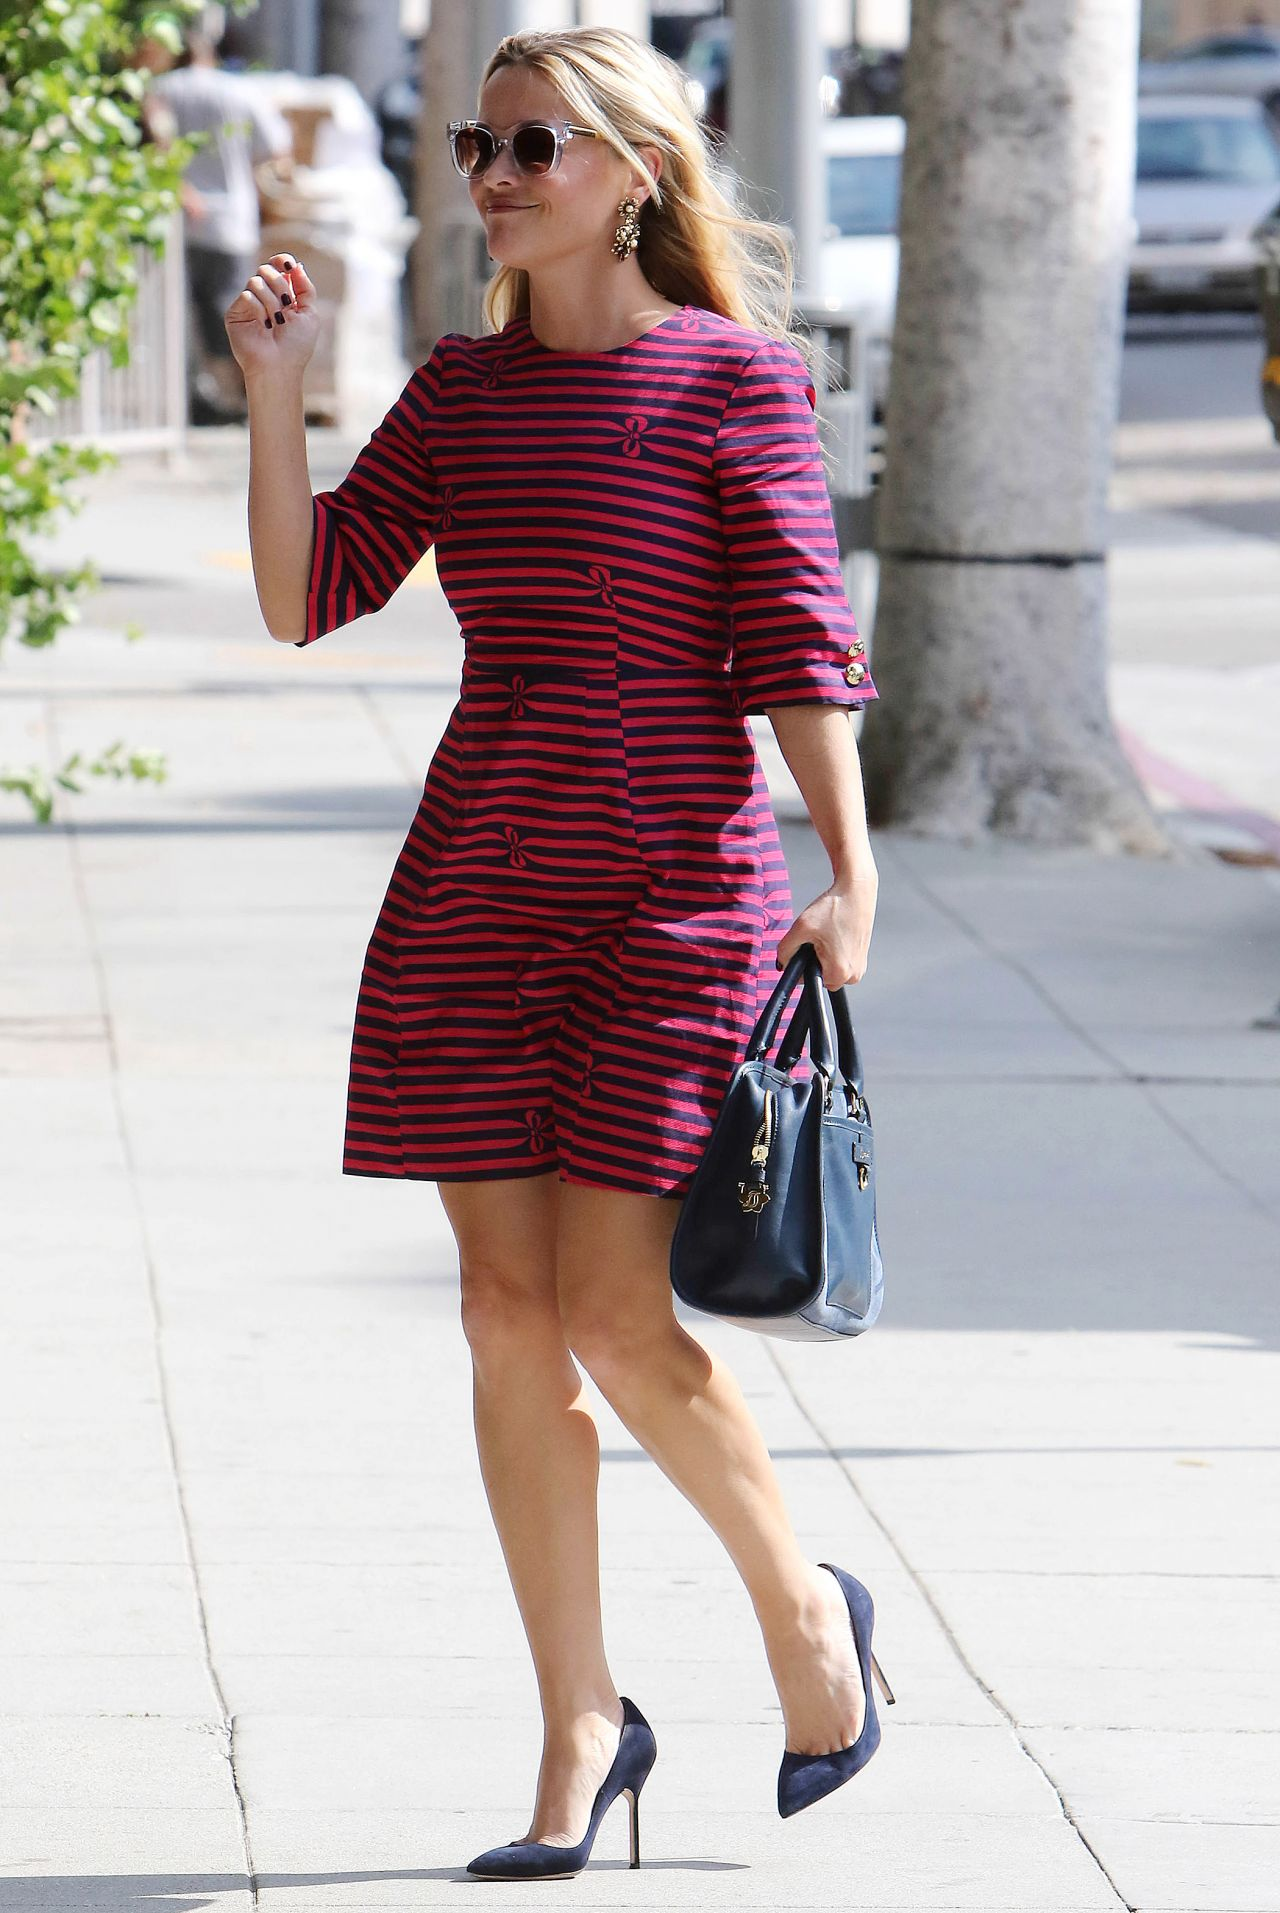 reese-witherspoon-out-in-west-hollywood-october-2015_1